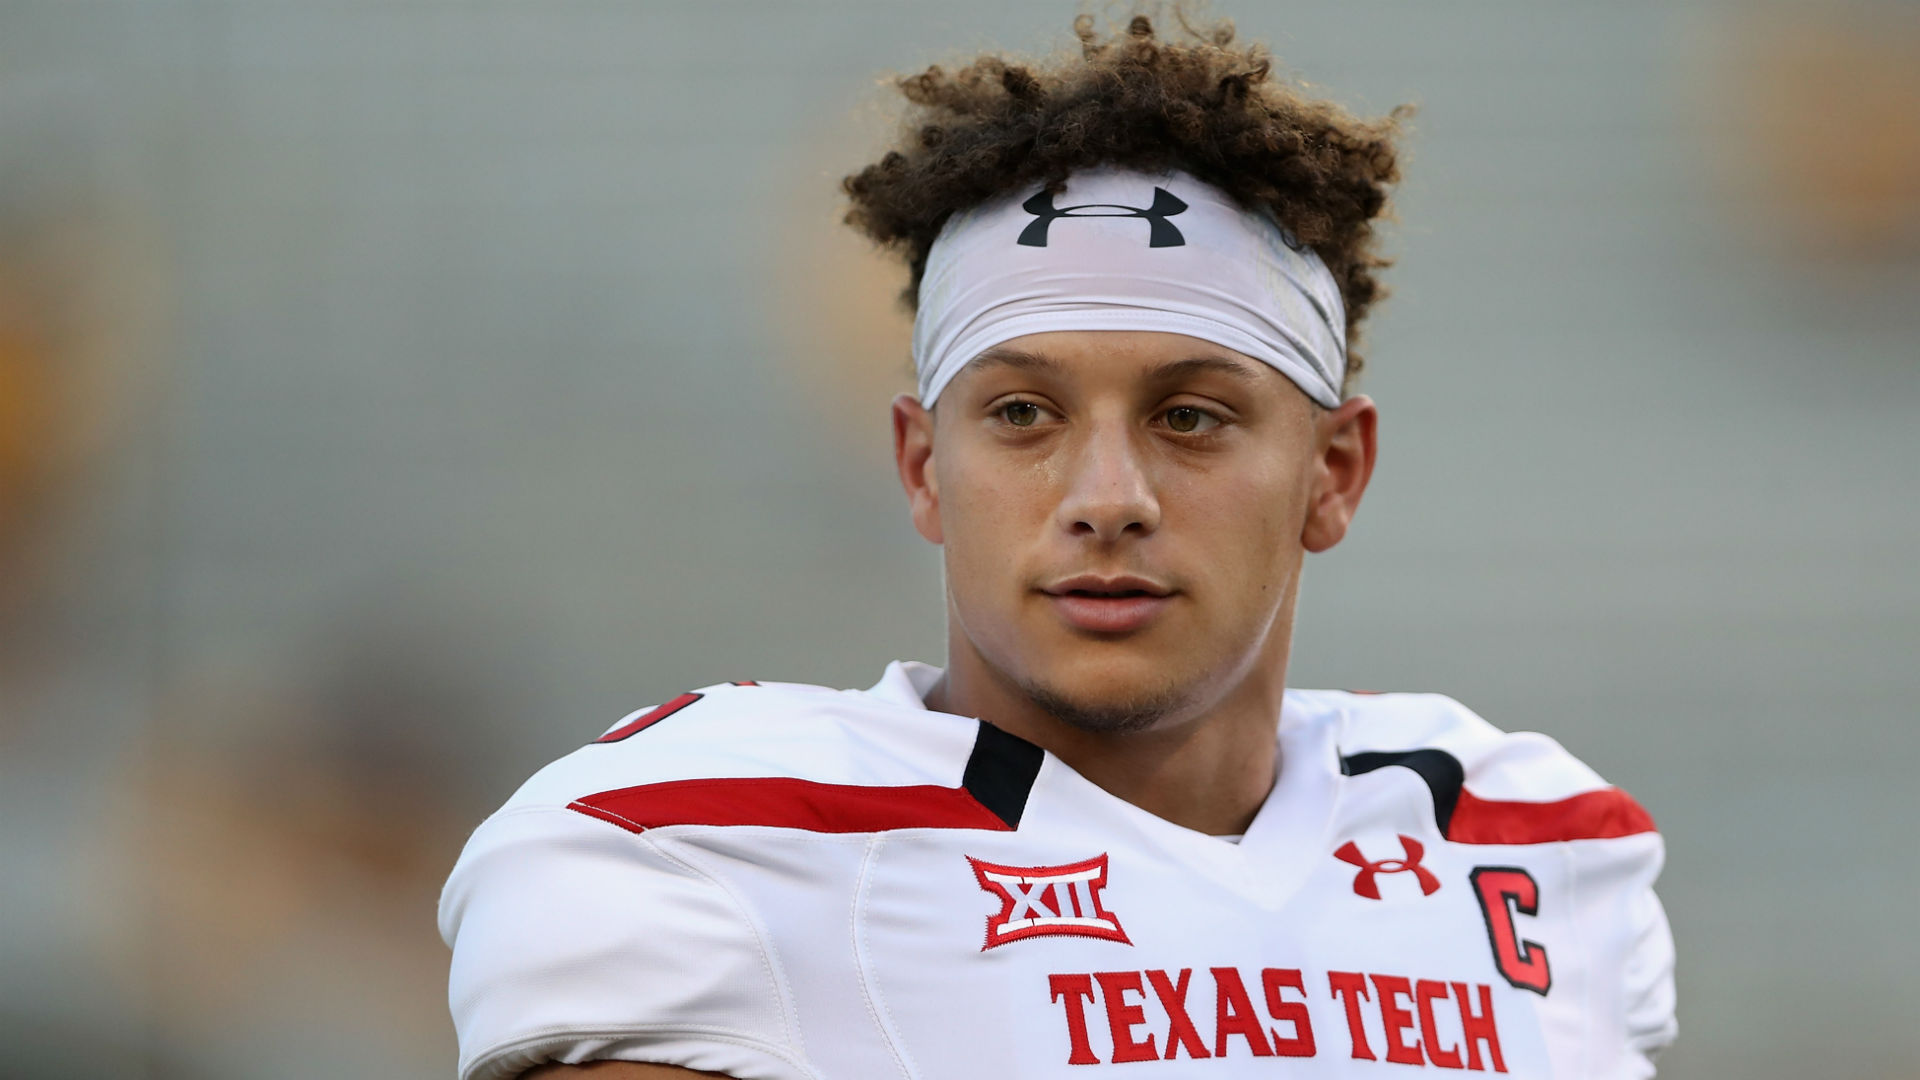 Sheriff: Chiefs top draft pick Mahomes unharmed in robbery